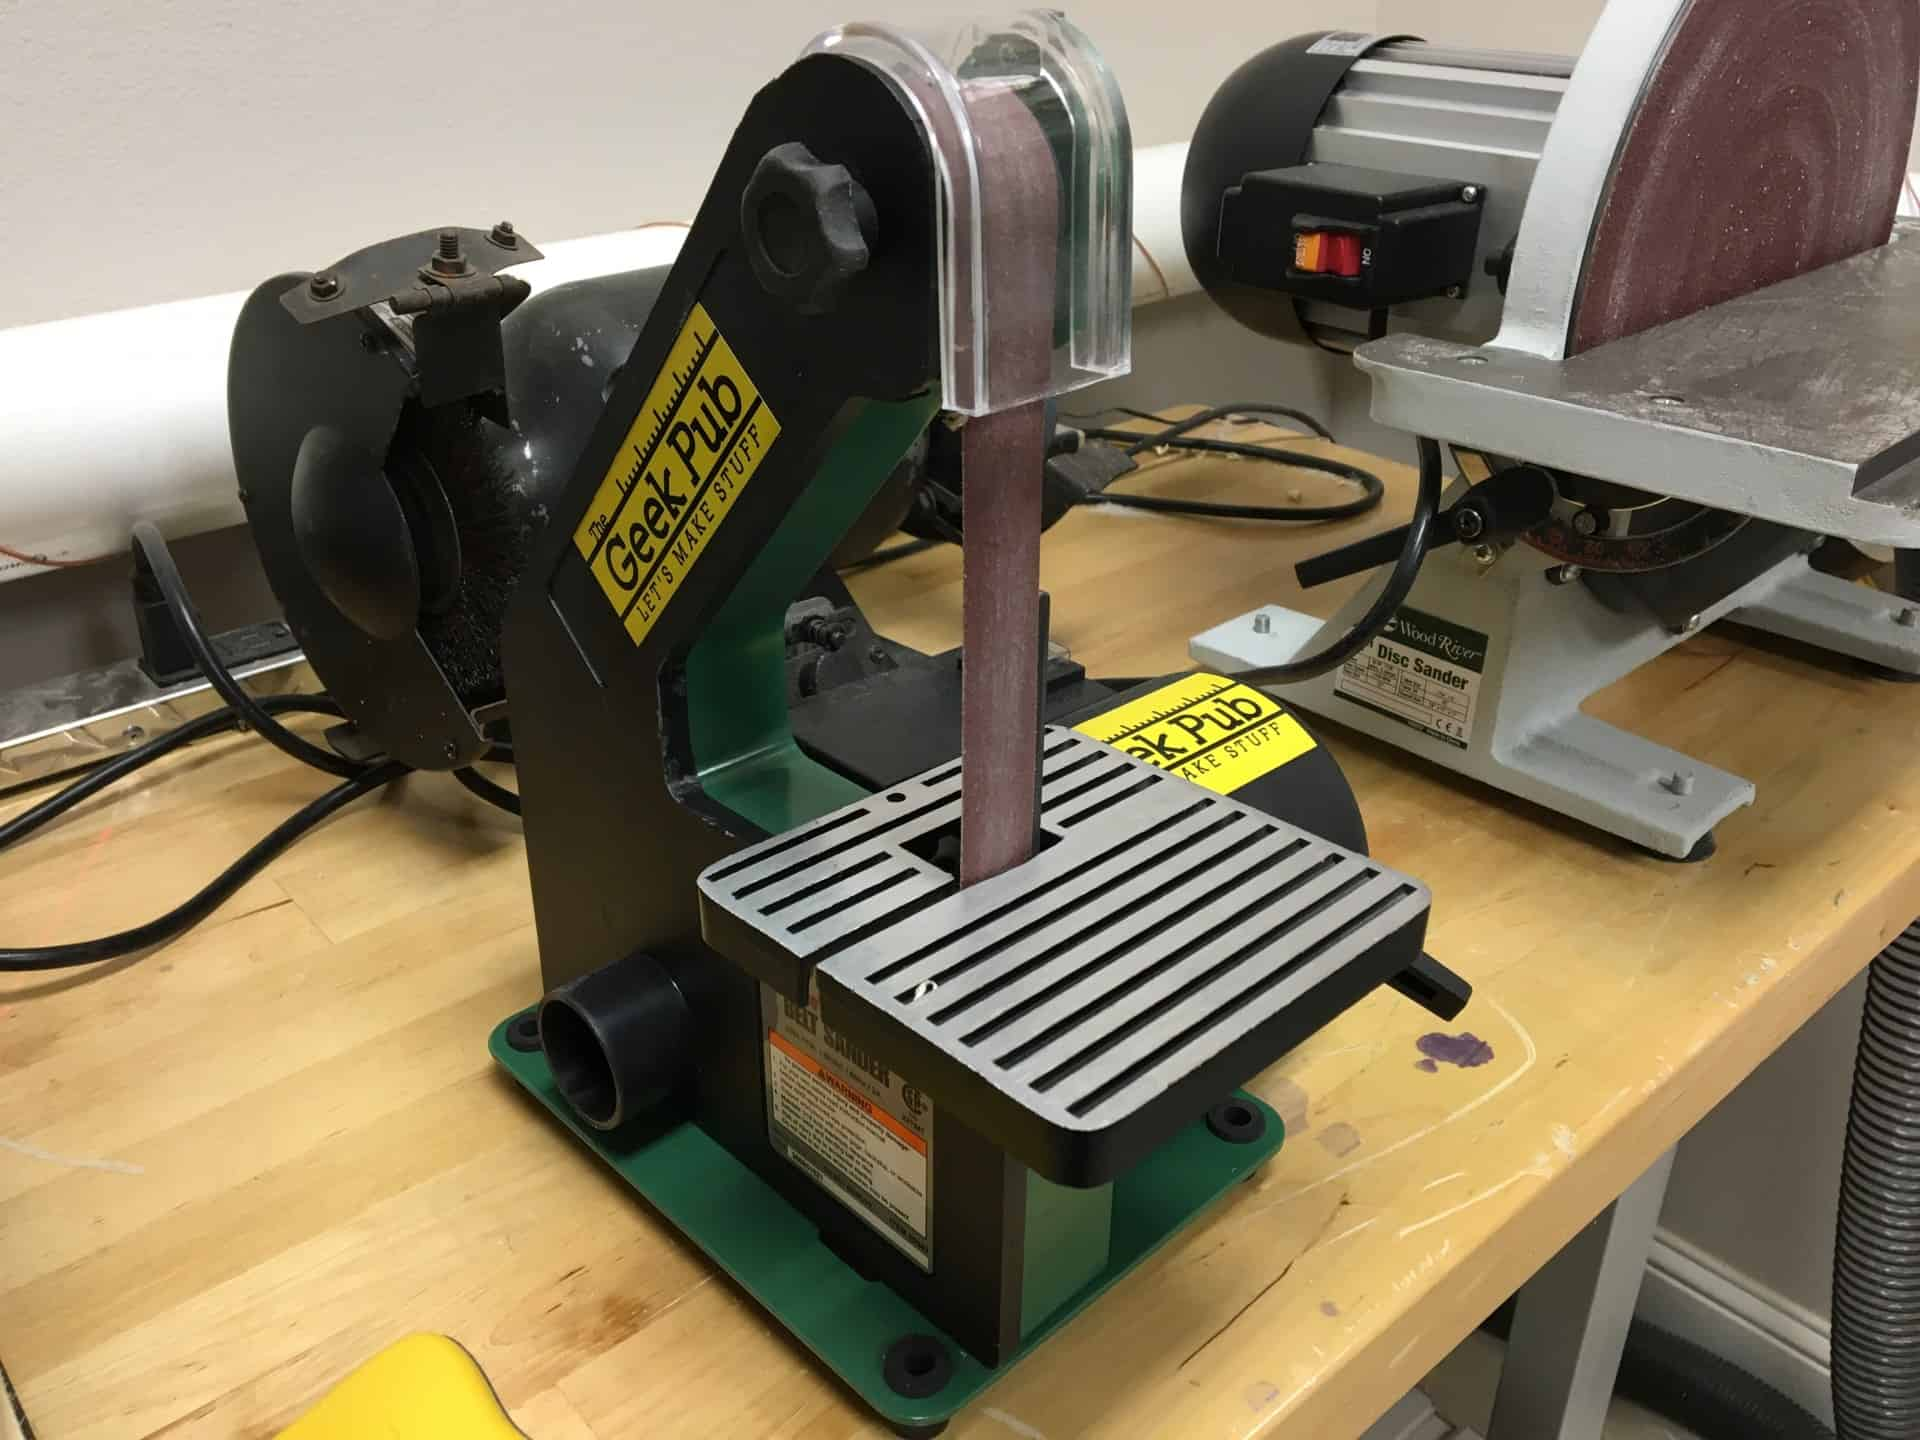 Grizzly H3140 Harbor Freight 1 inch belt sander